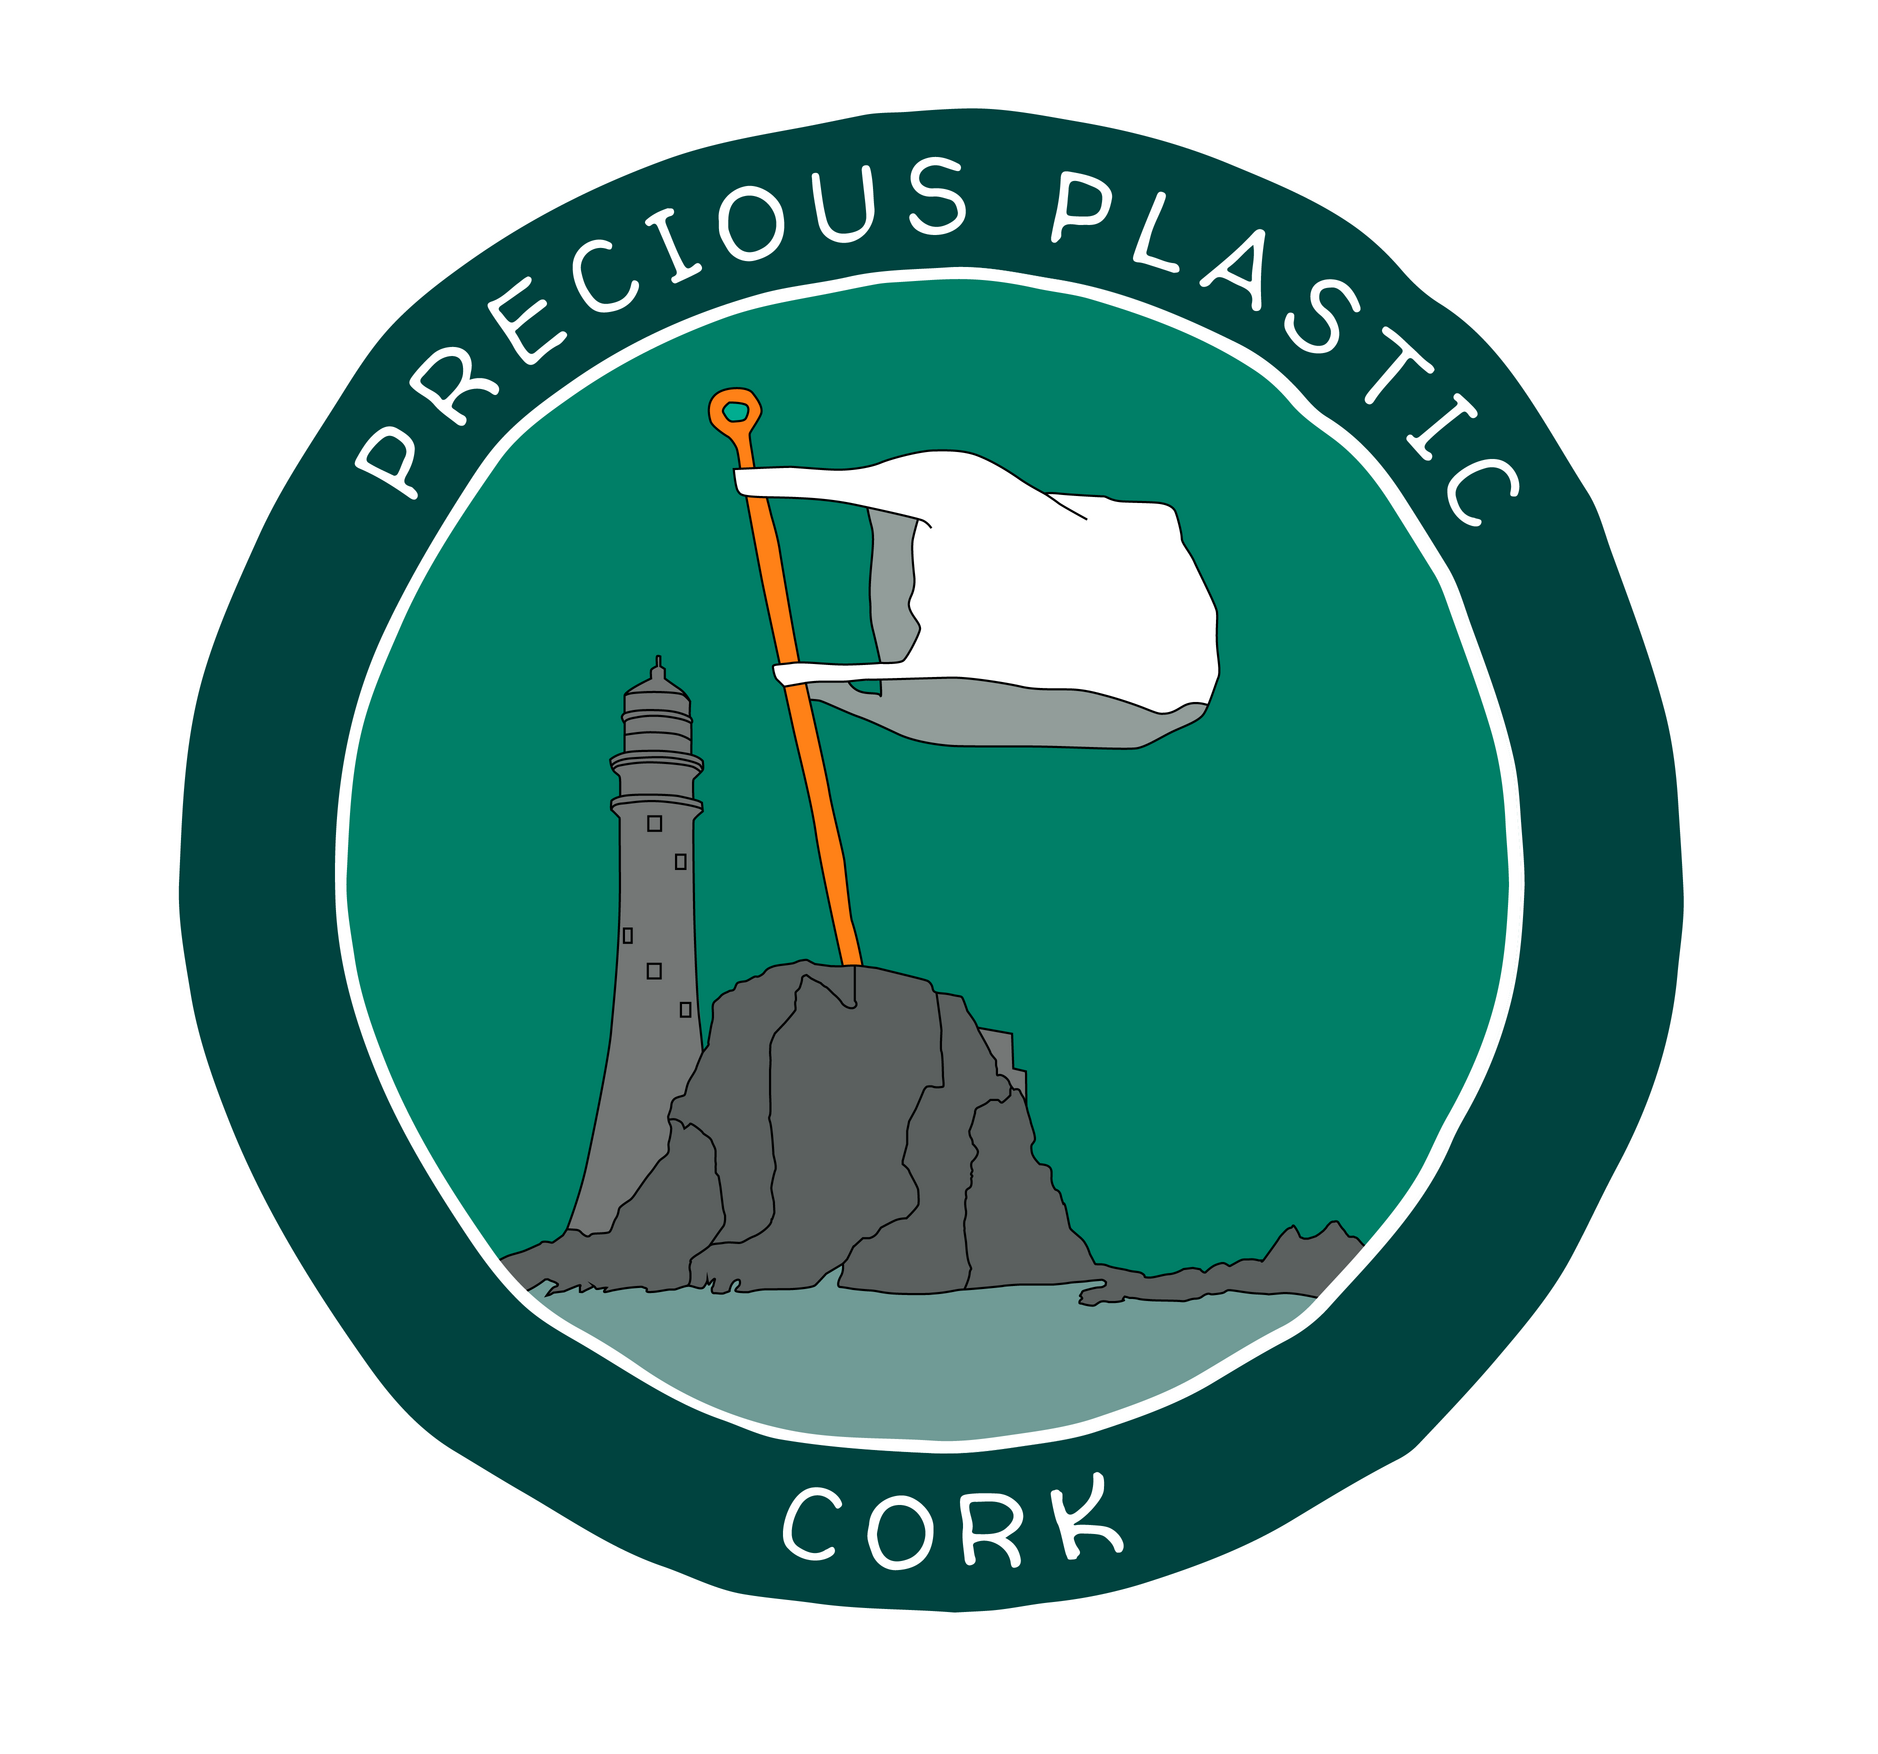 Precious Plastics West Cork